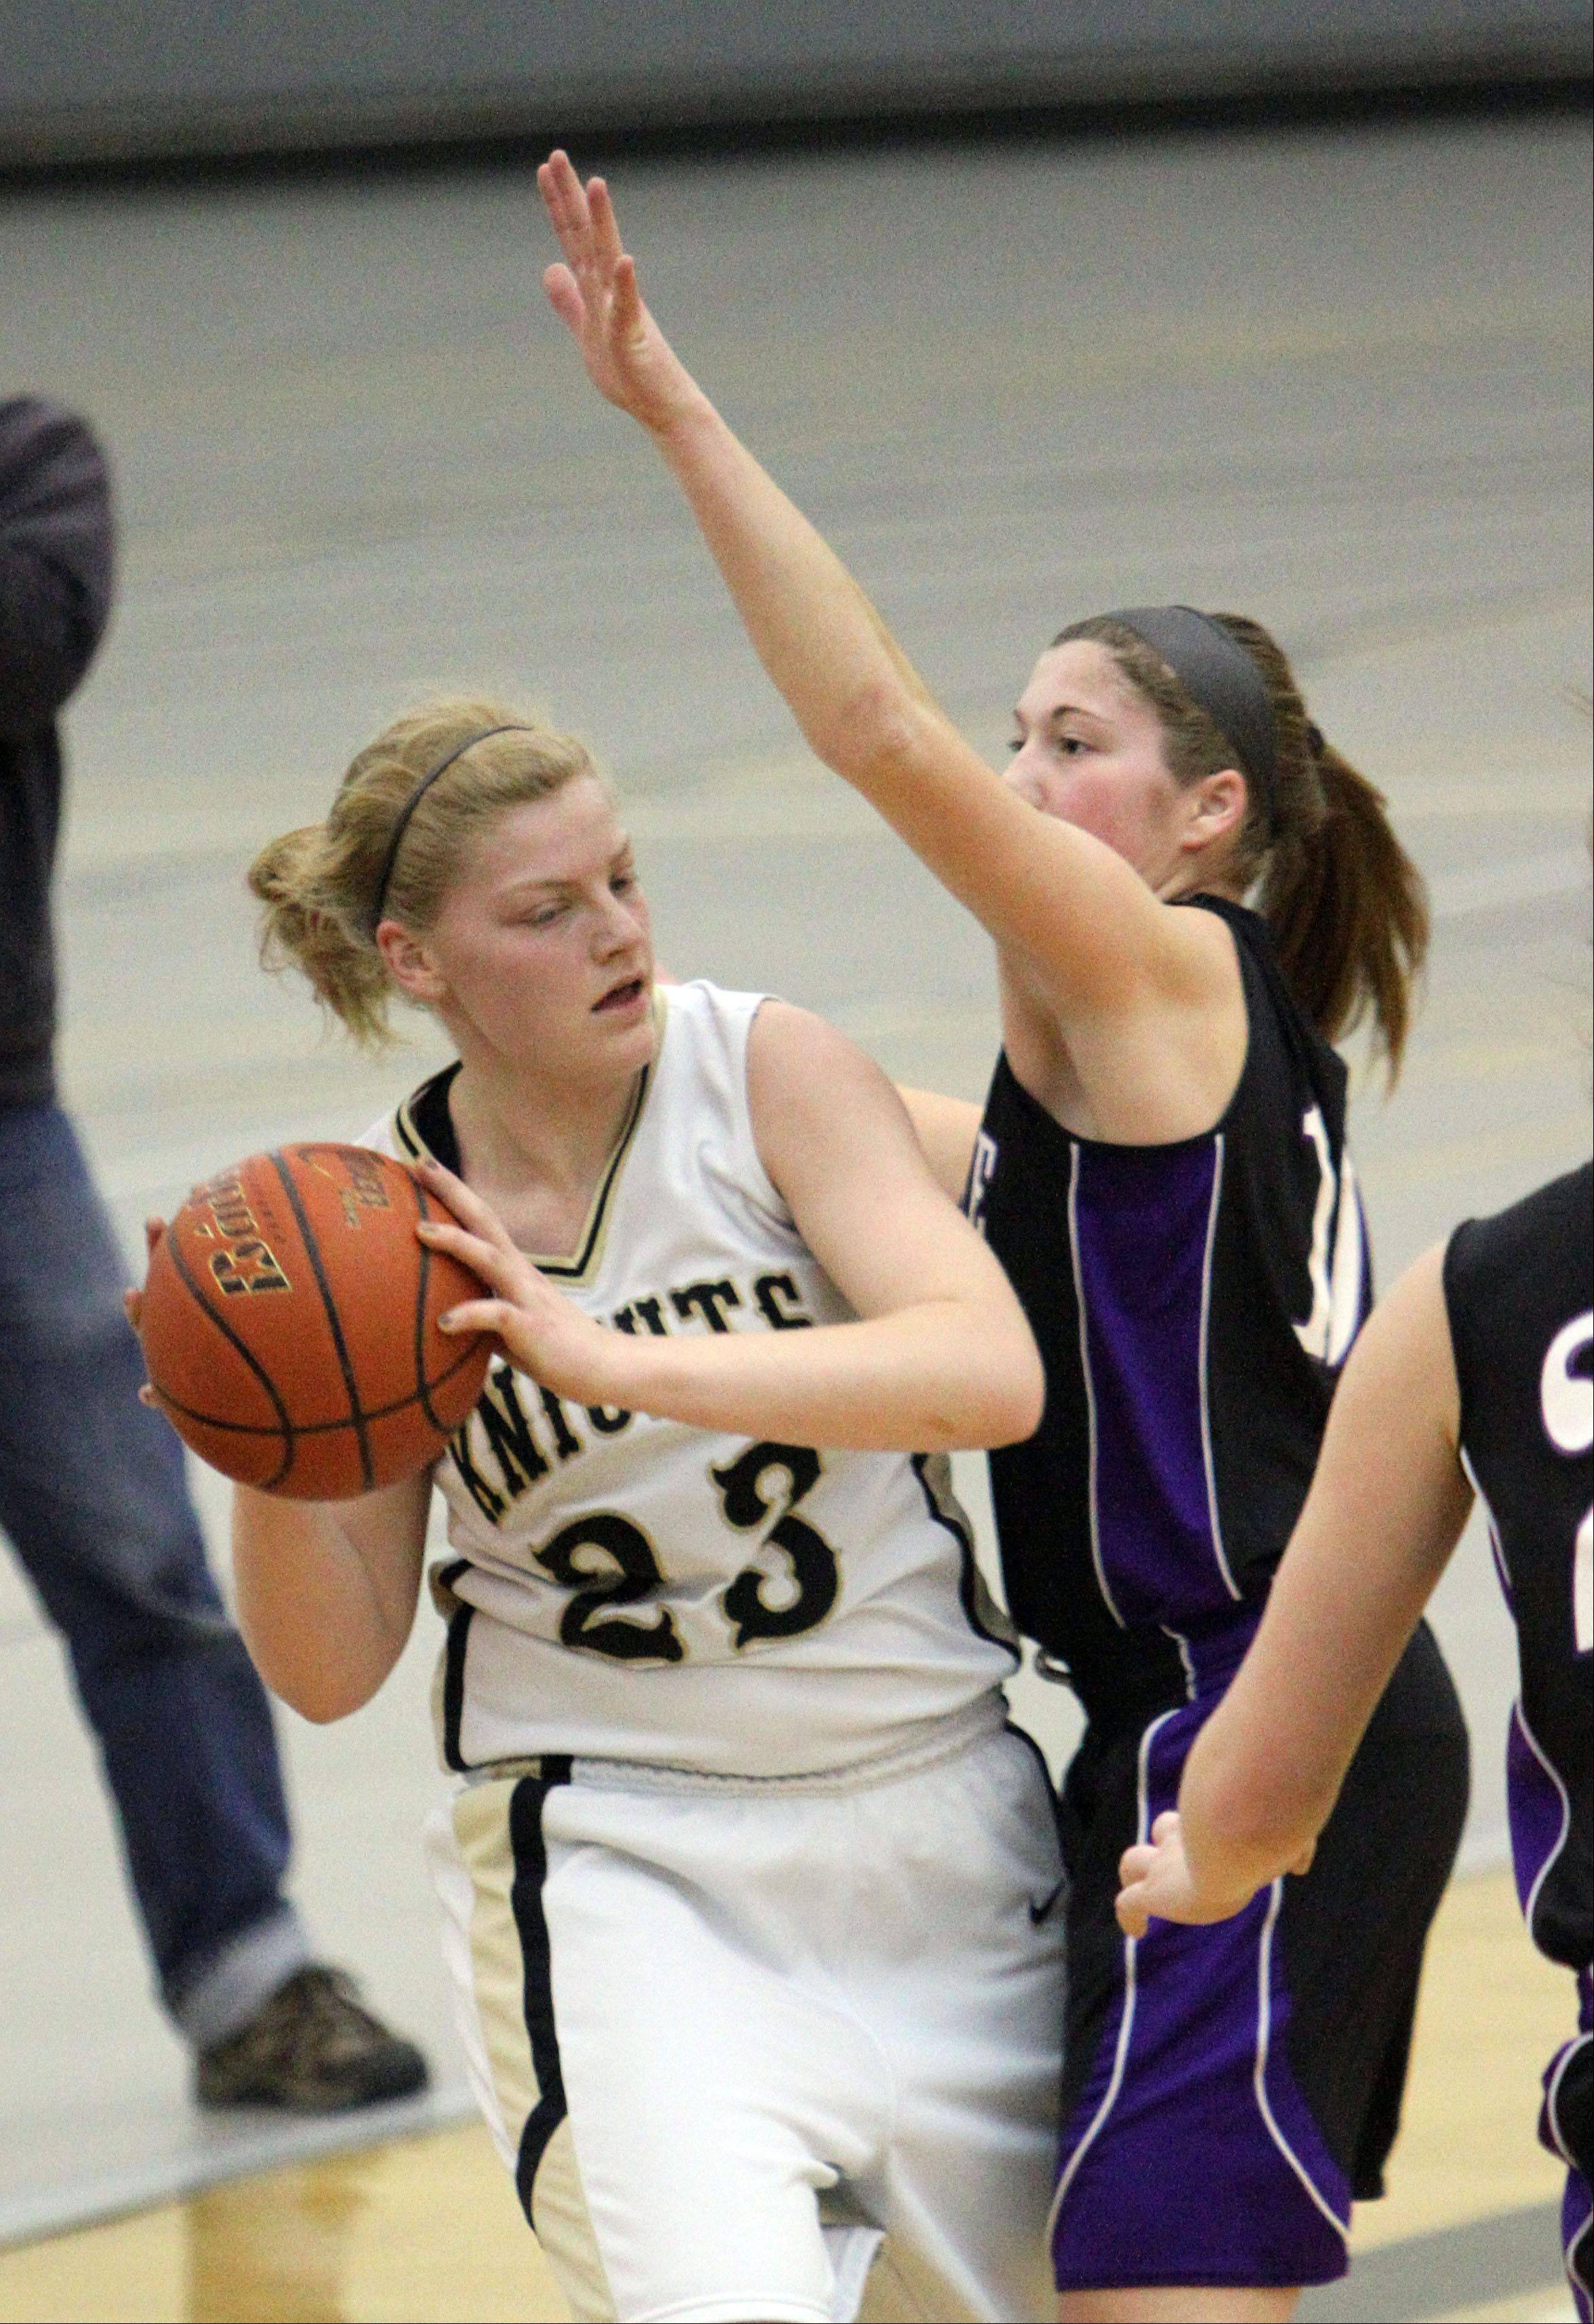 Images from the Hampshire at Grayslake North girls basketball game Wednesday, Jan. 30.